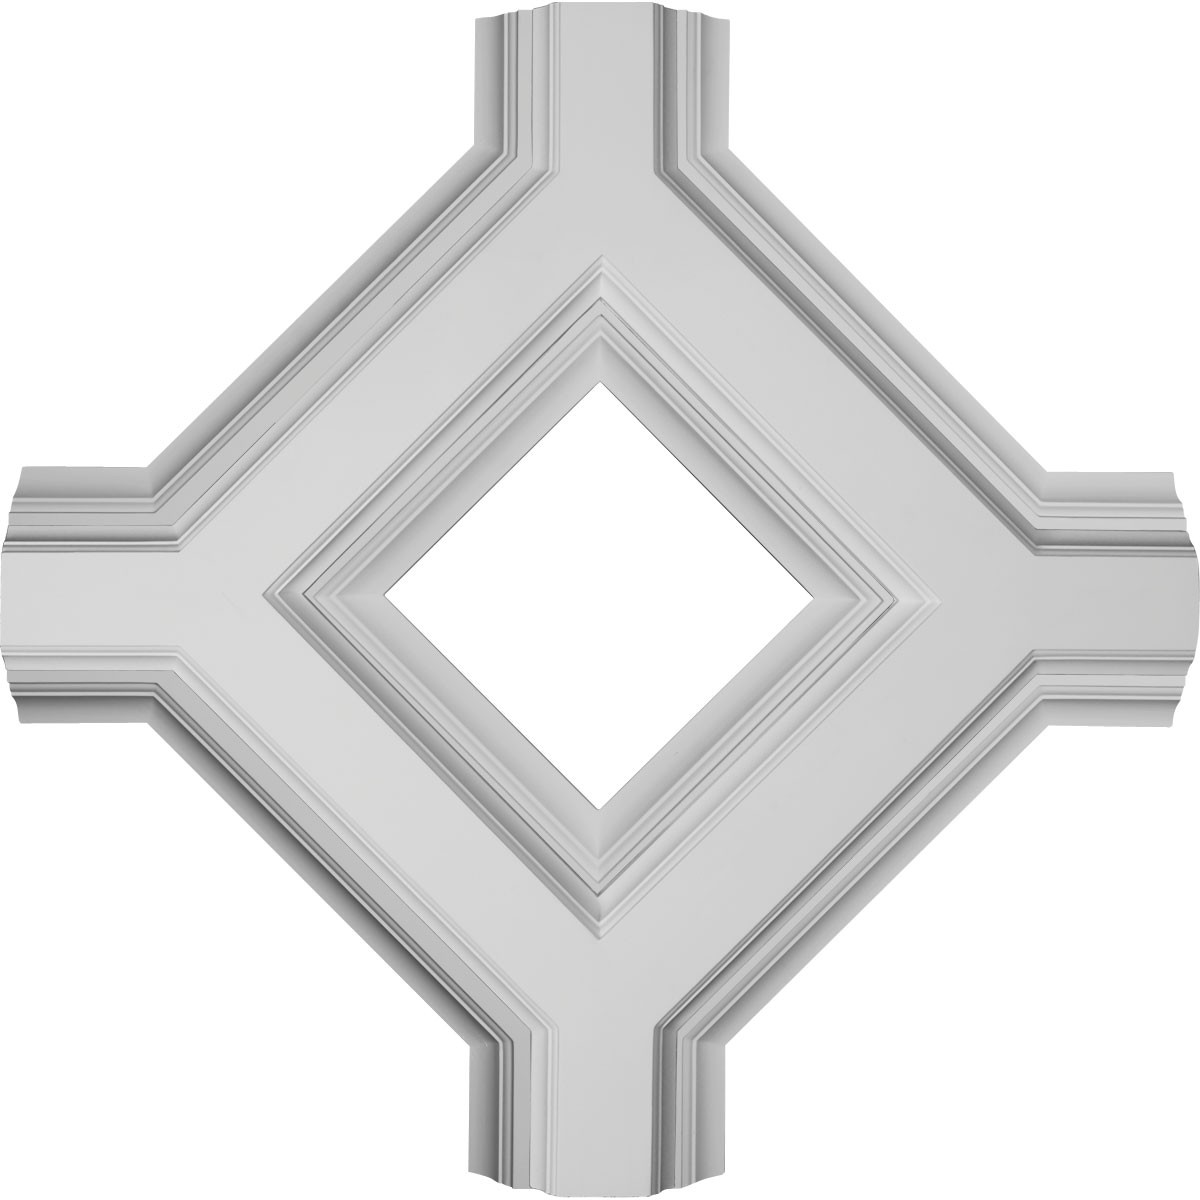 """EM-CC08IDI04X36X36DE - 36""""W x 4""""P x 36""""L Inner Diamond Intersection for 8"""" Deluxe Coffered Ceiling System (Kit)"""